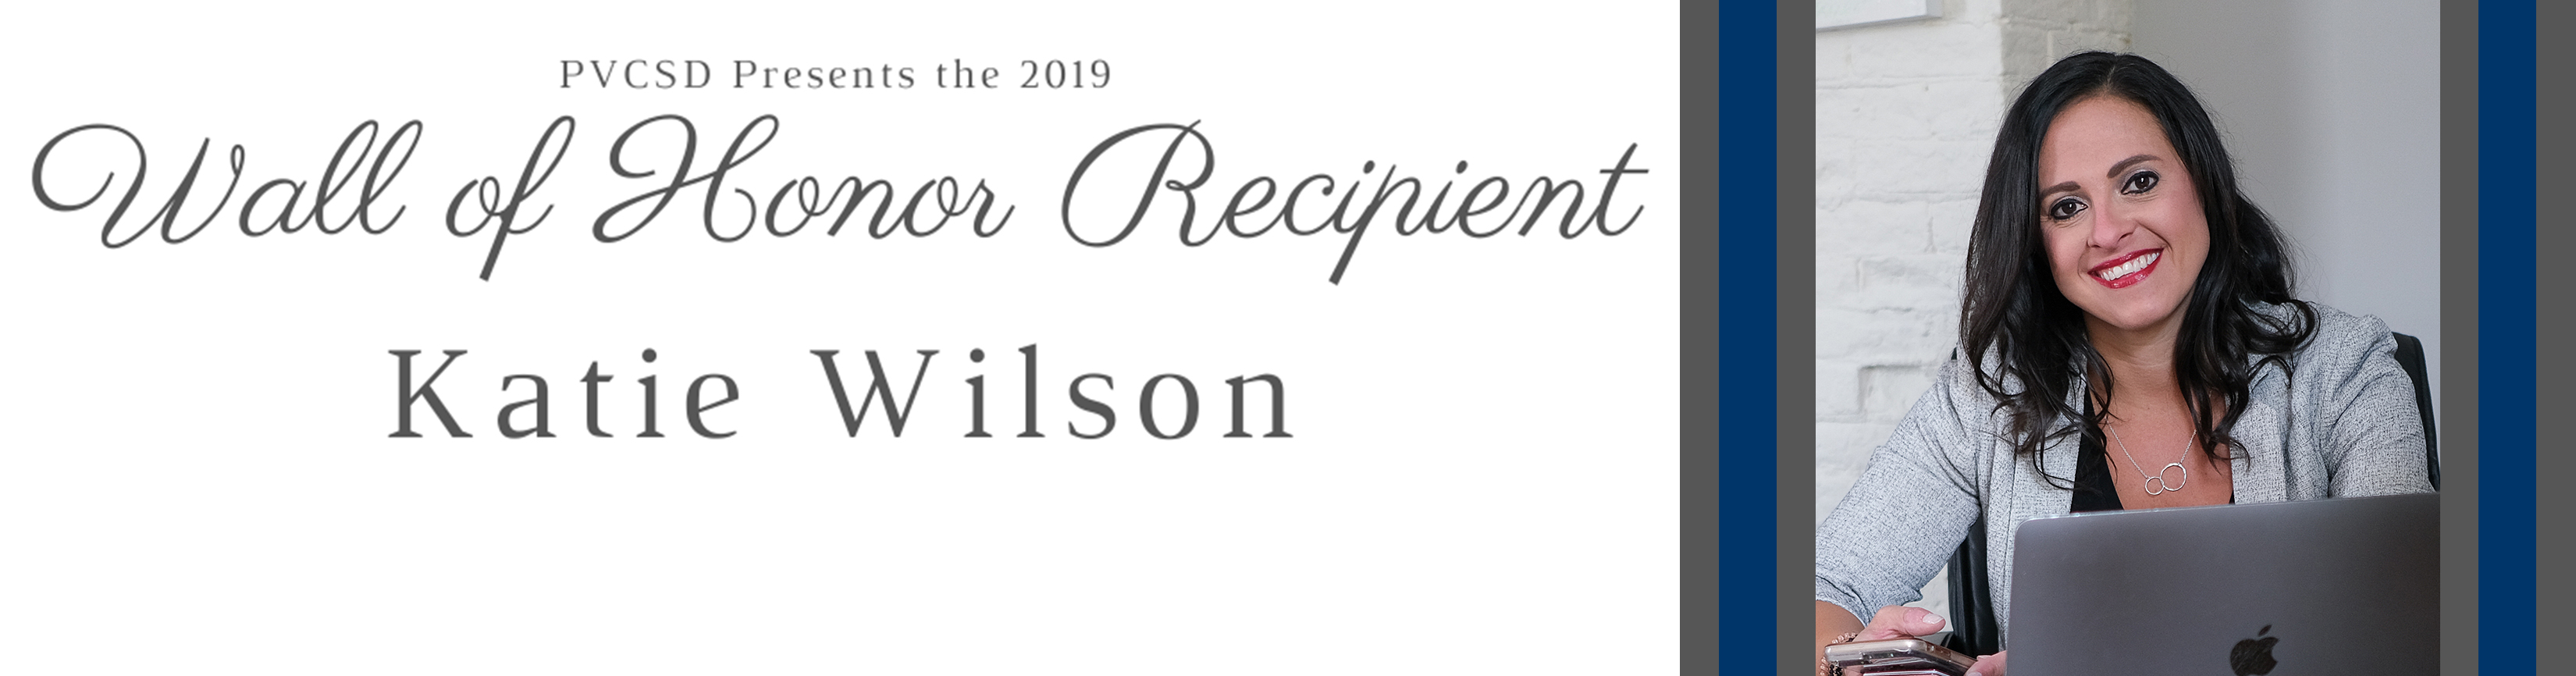 2019 Wall of Honor Recipient - Katie Wilson